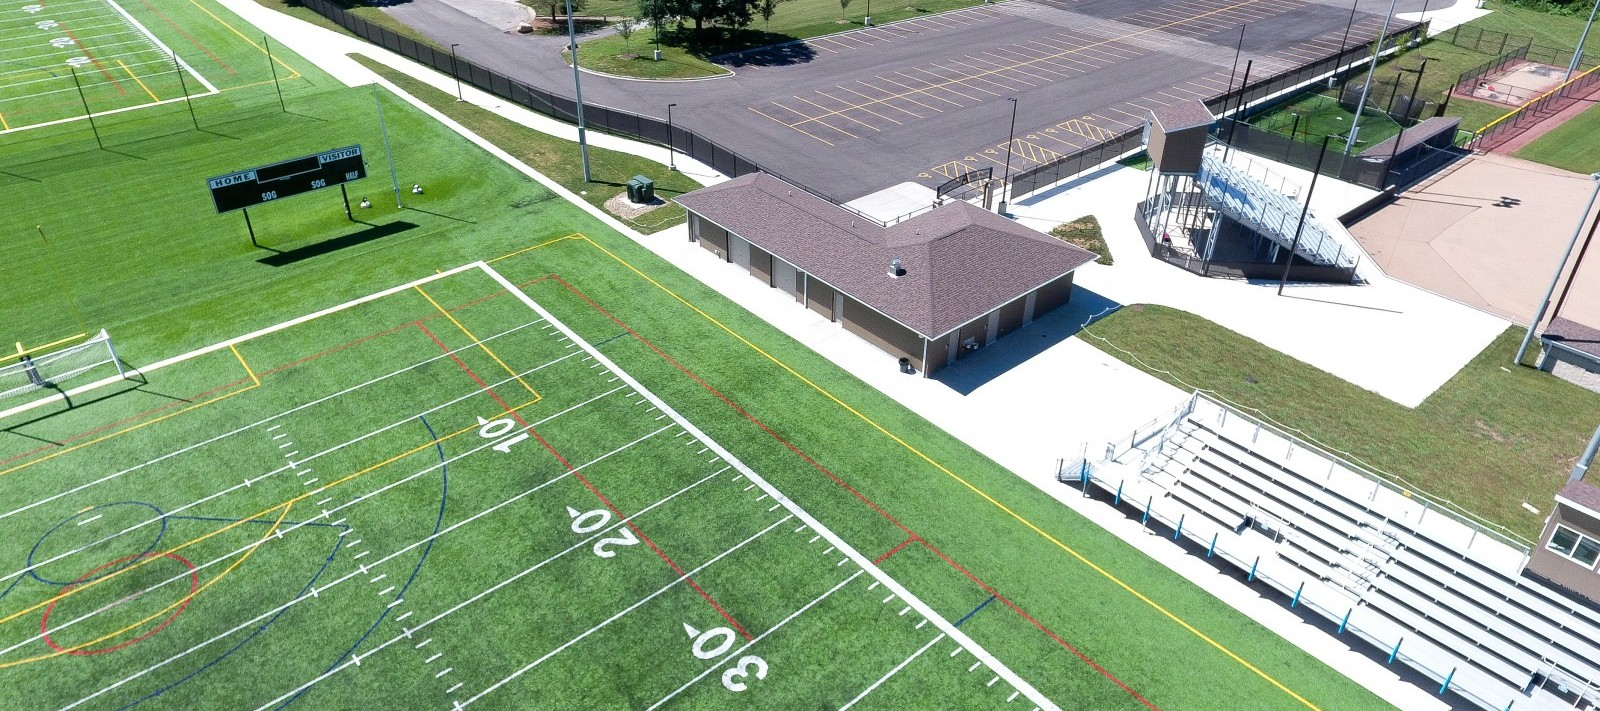 Aerial view of Assumption sports complex